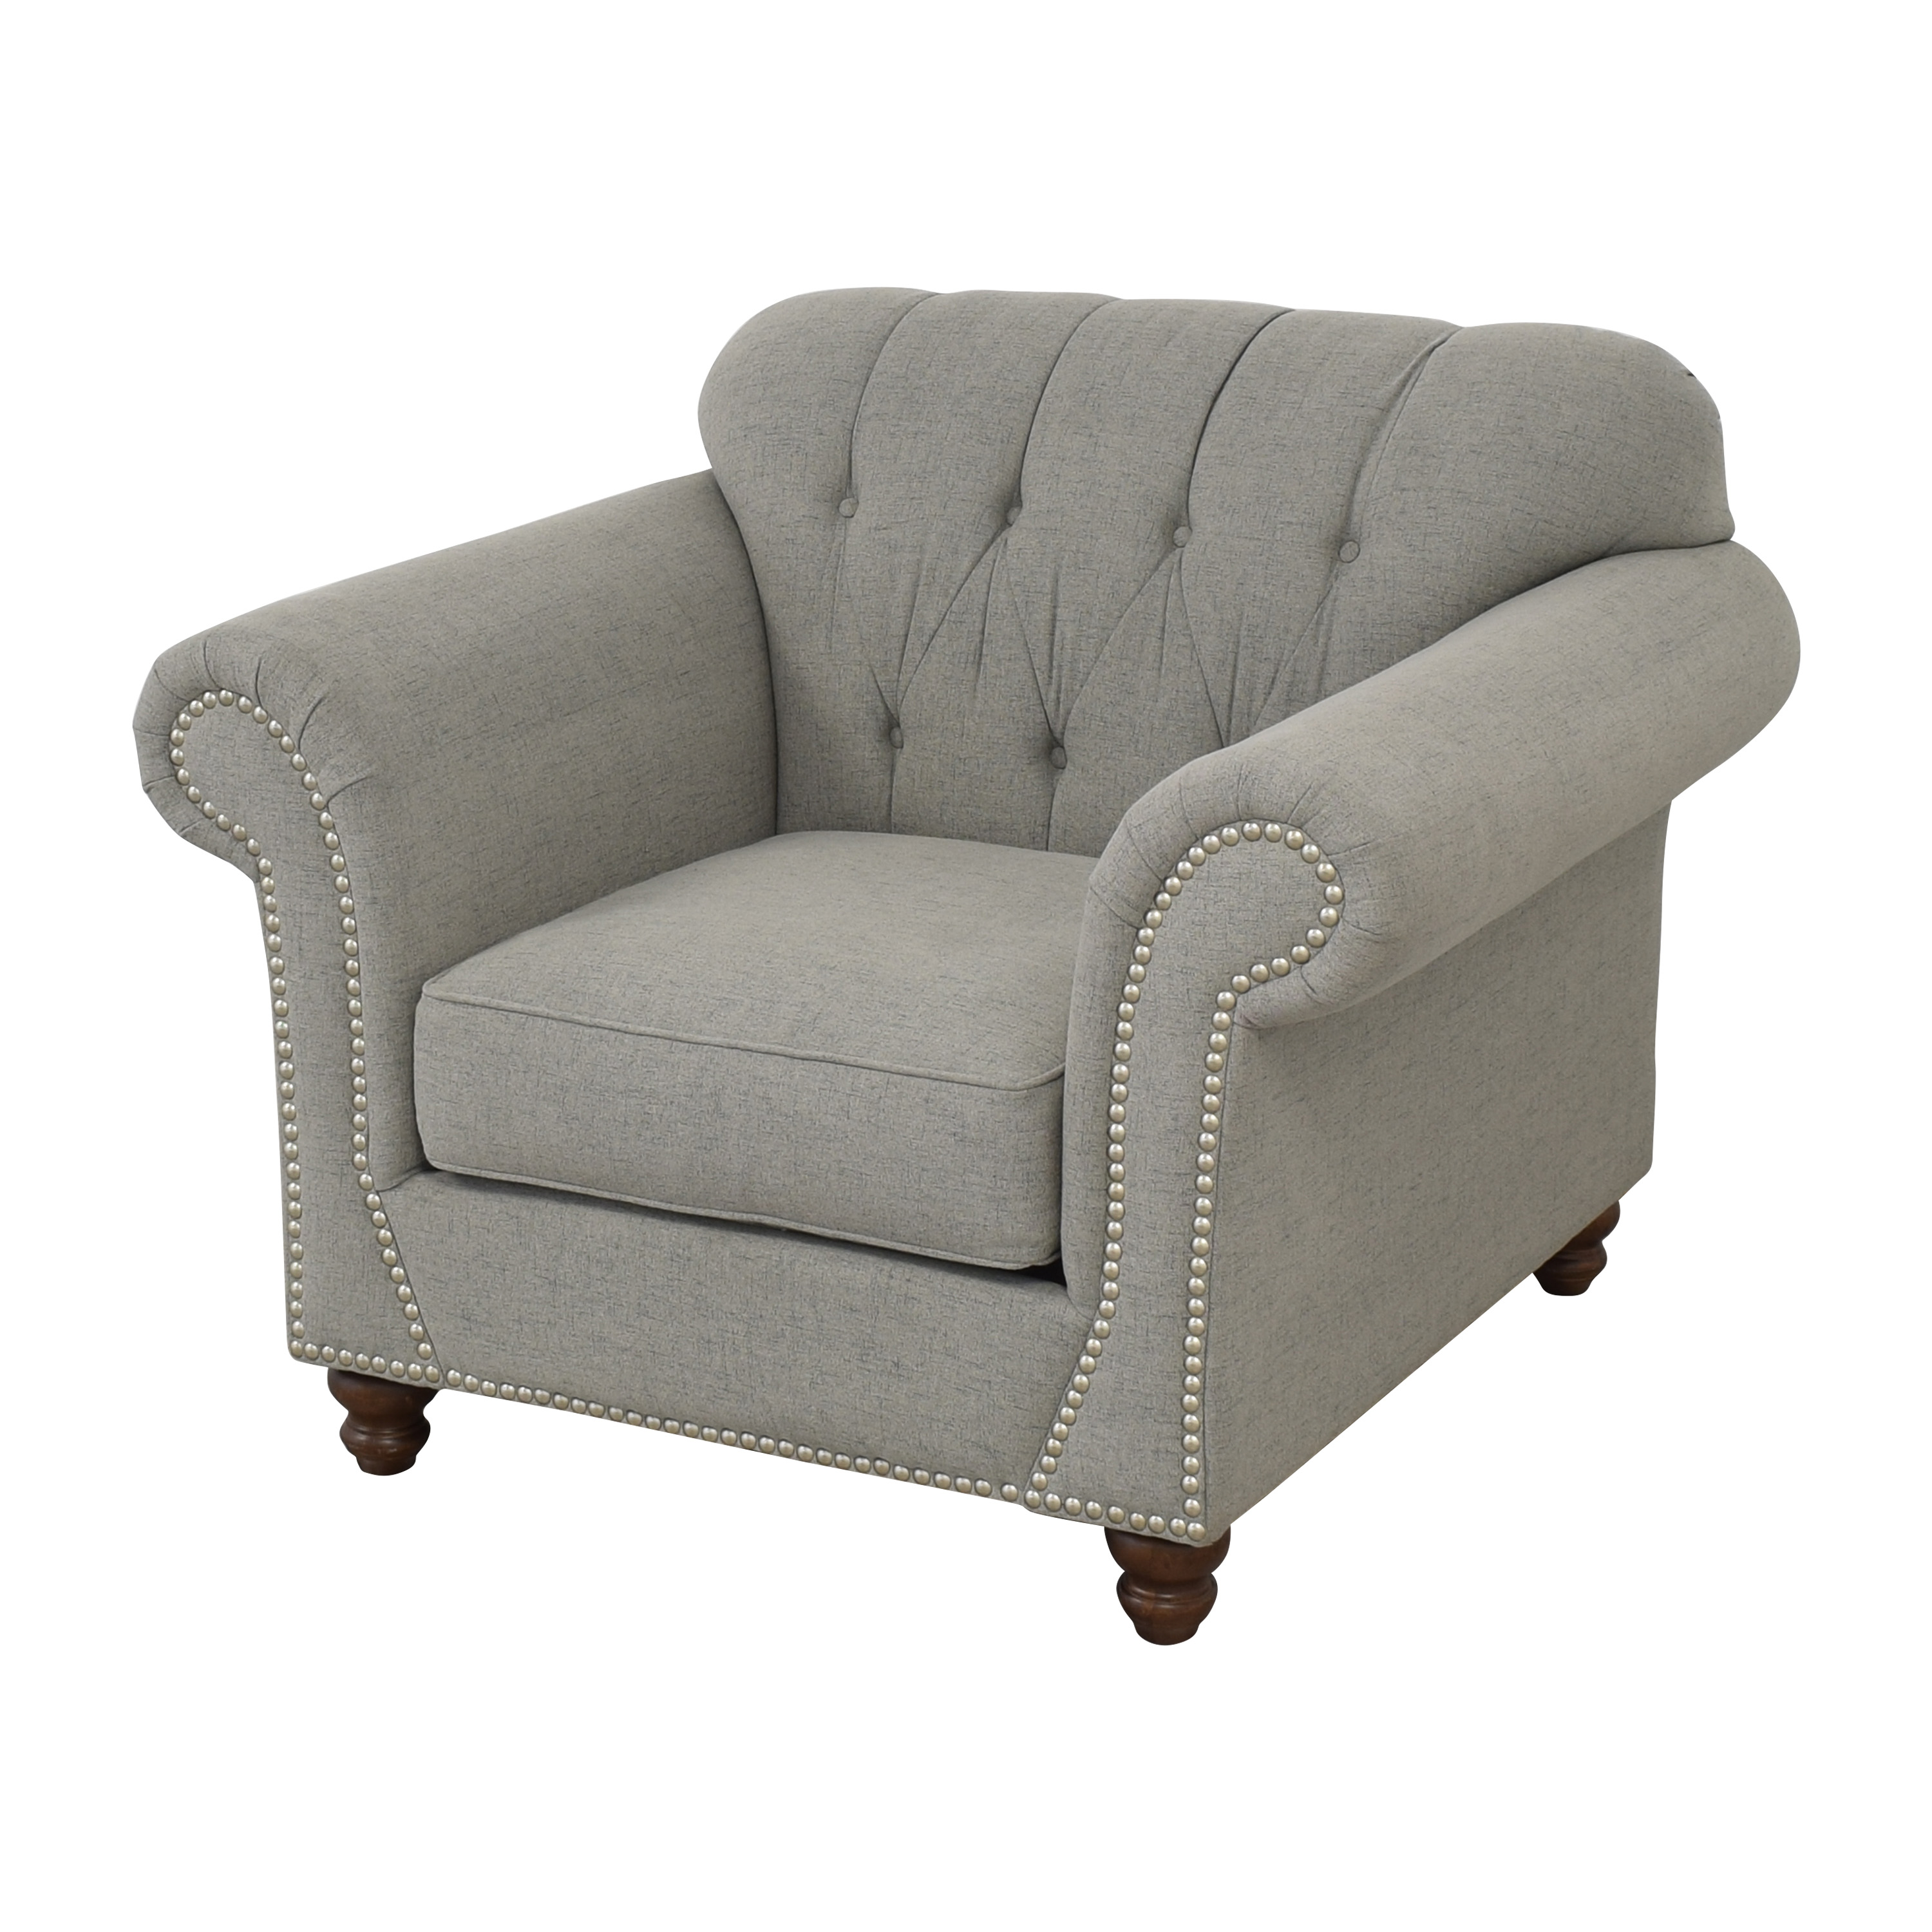 Klaussner Distinctions Nailhead Accent Chair / Accent Chairs